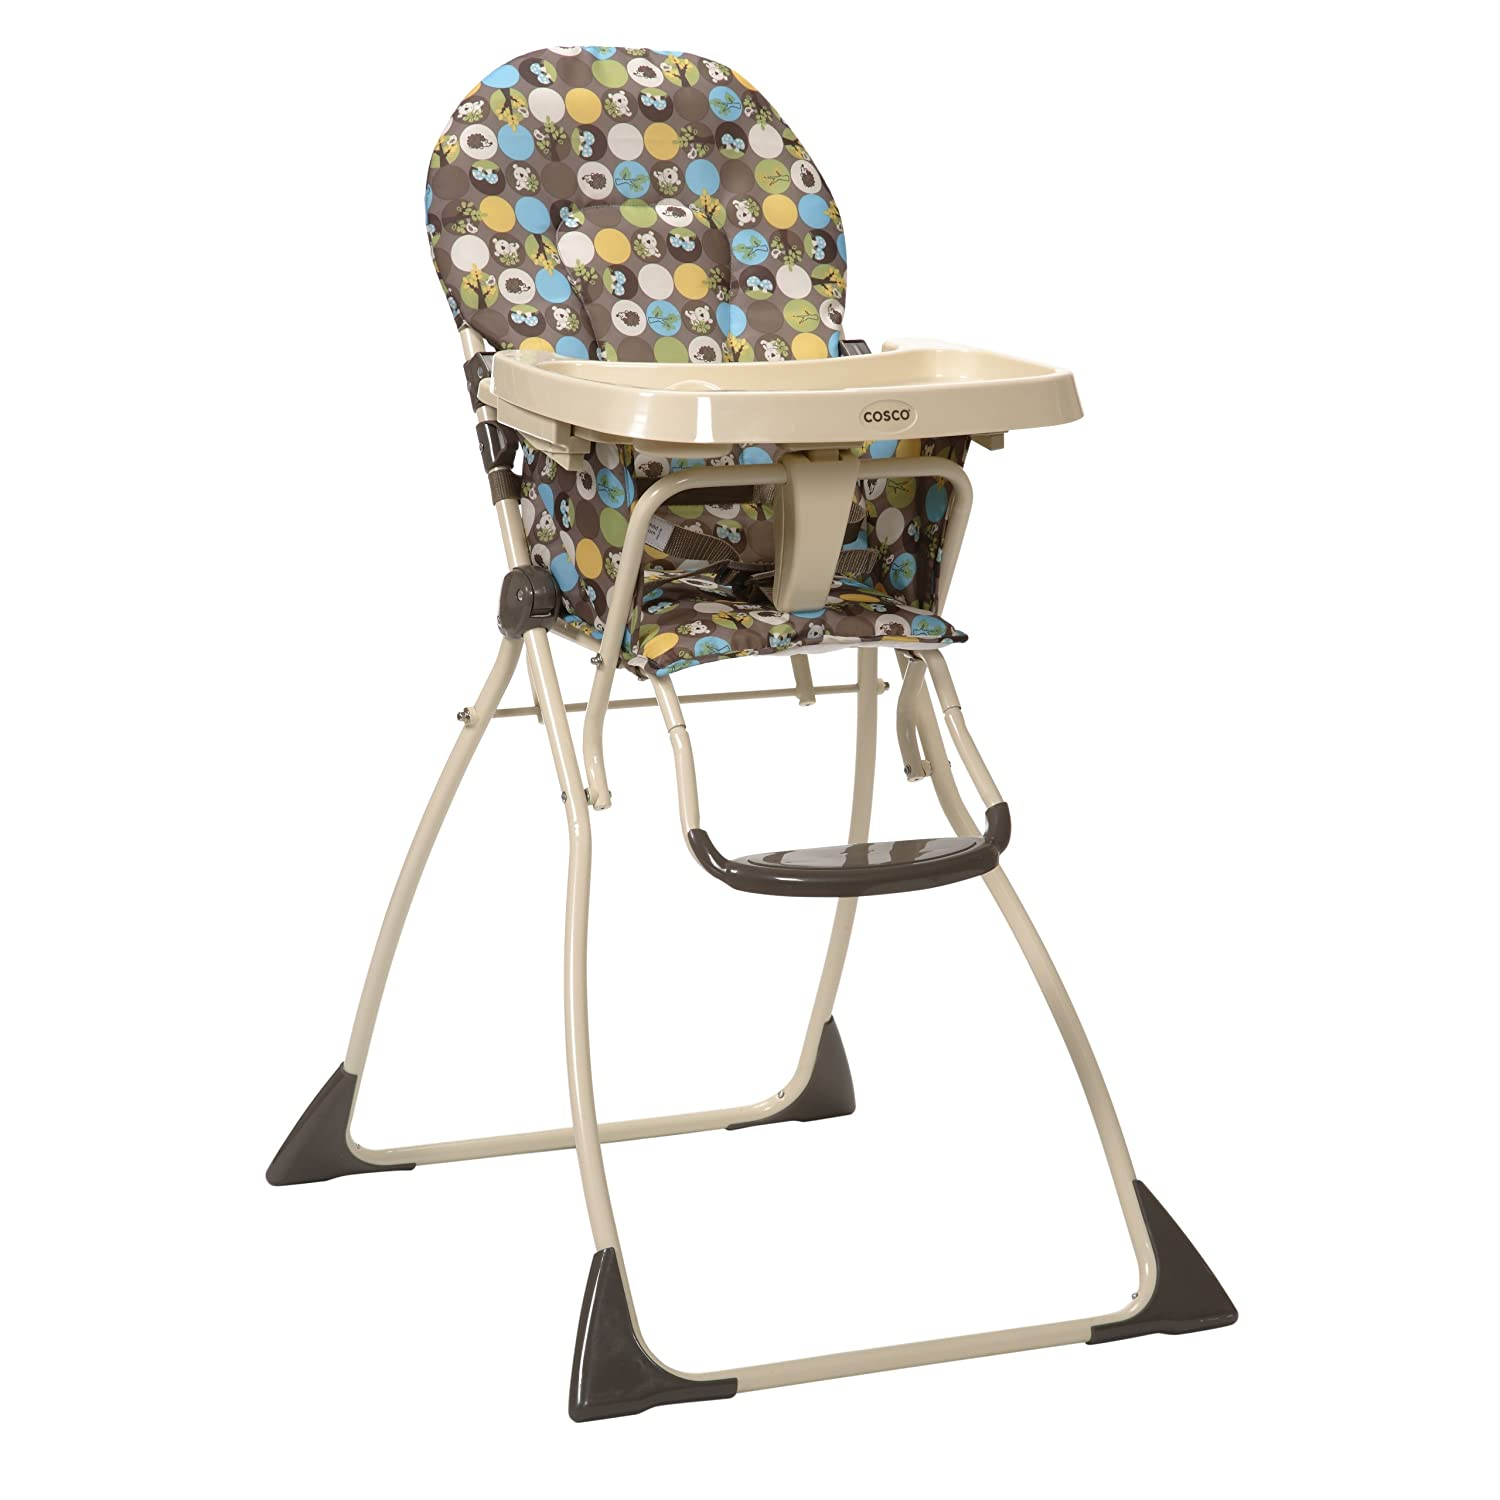 Groovy Cosco Flat Fold High Chair Into The Woods Evergreenethics Interior Chair Design Evergreenethicsorg